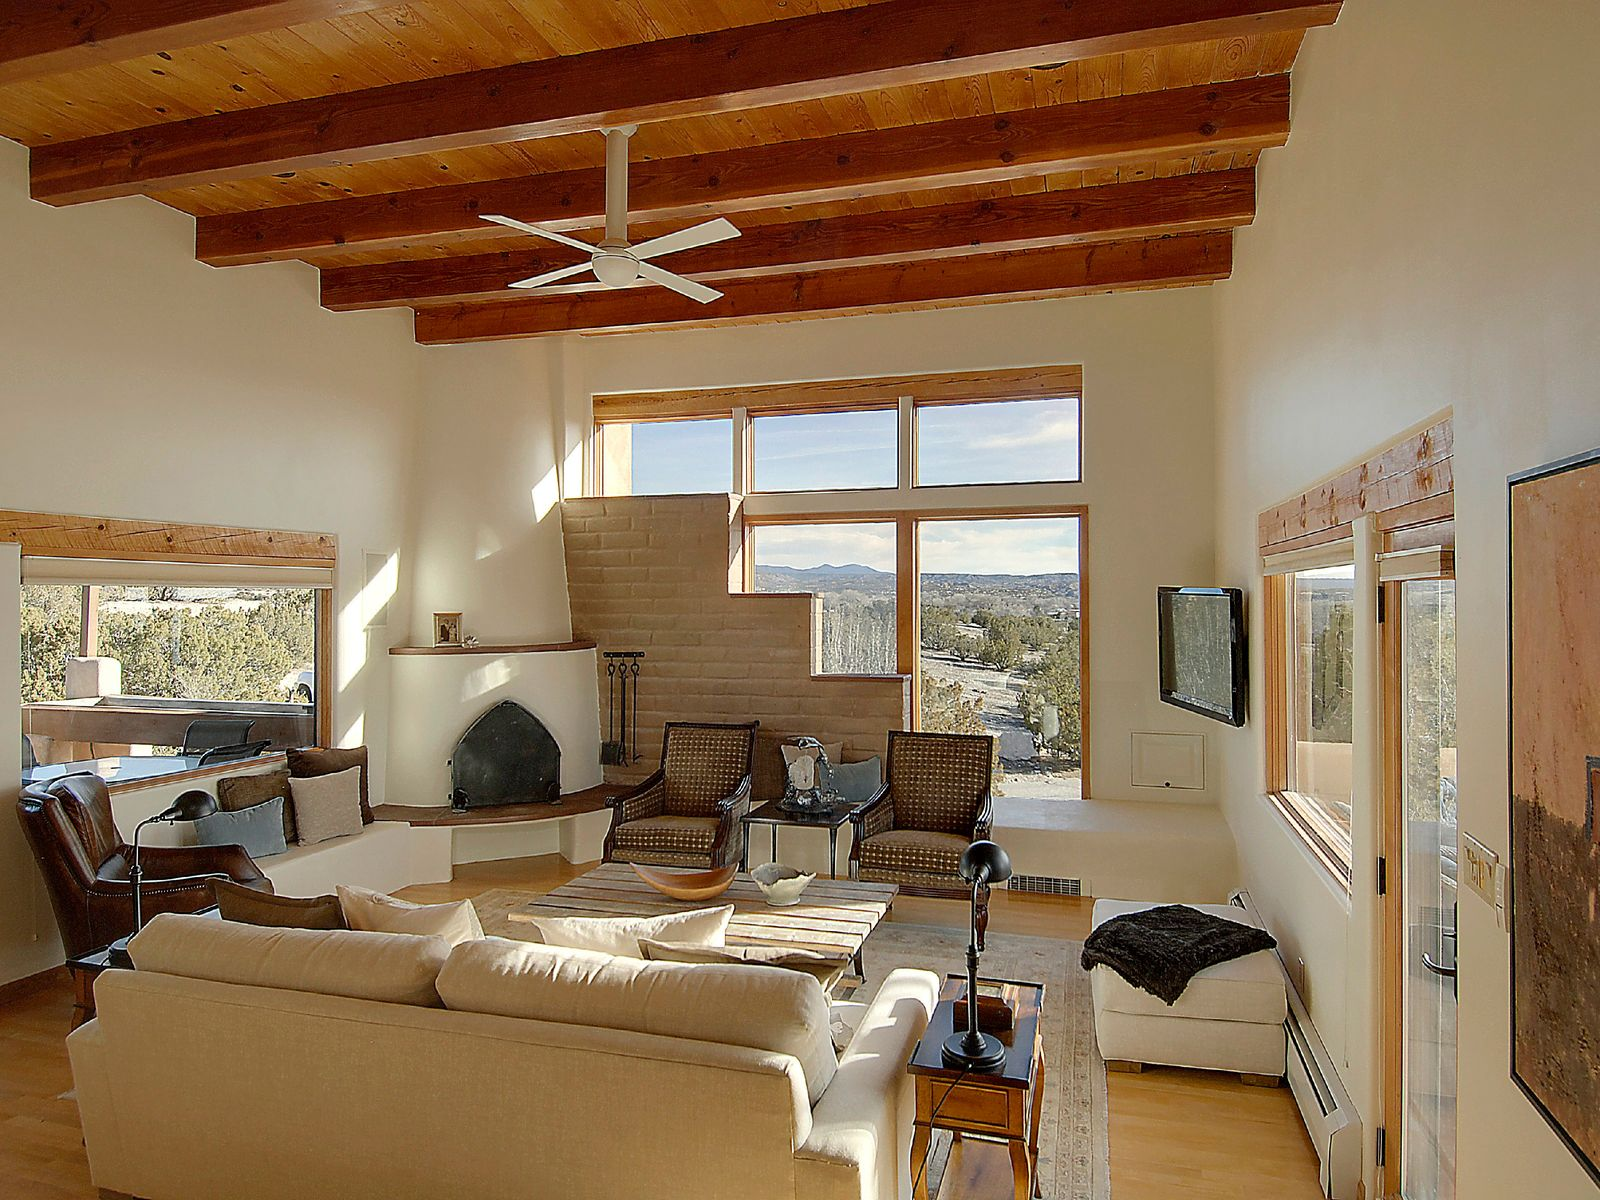 36 Loma Blanca, Santa Fe NM Single Family Home - Santa Fe Real Estate